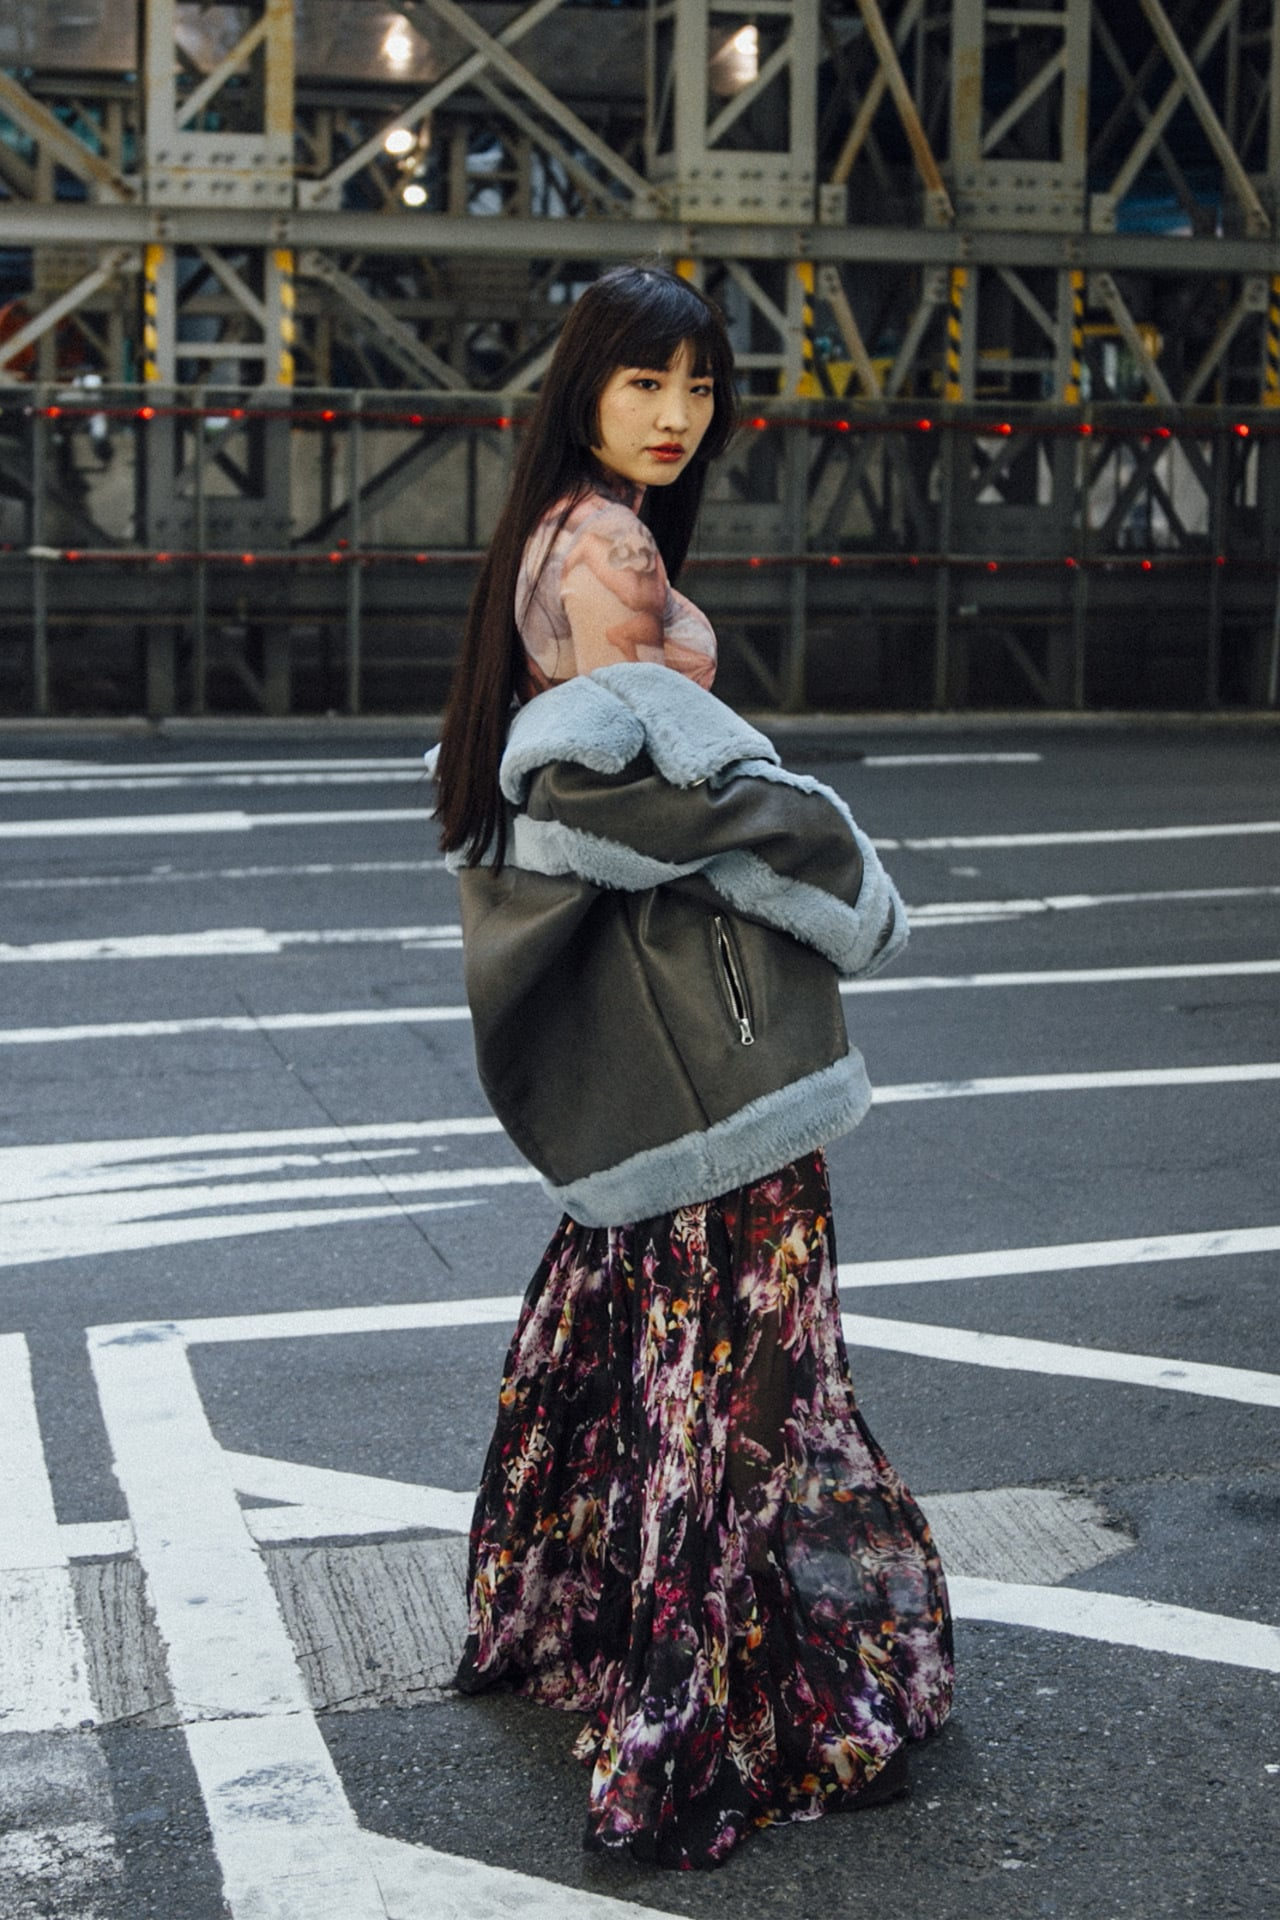 Street style inspiration from Tokyo Fashion Week autumn/winter '19/'20